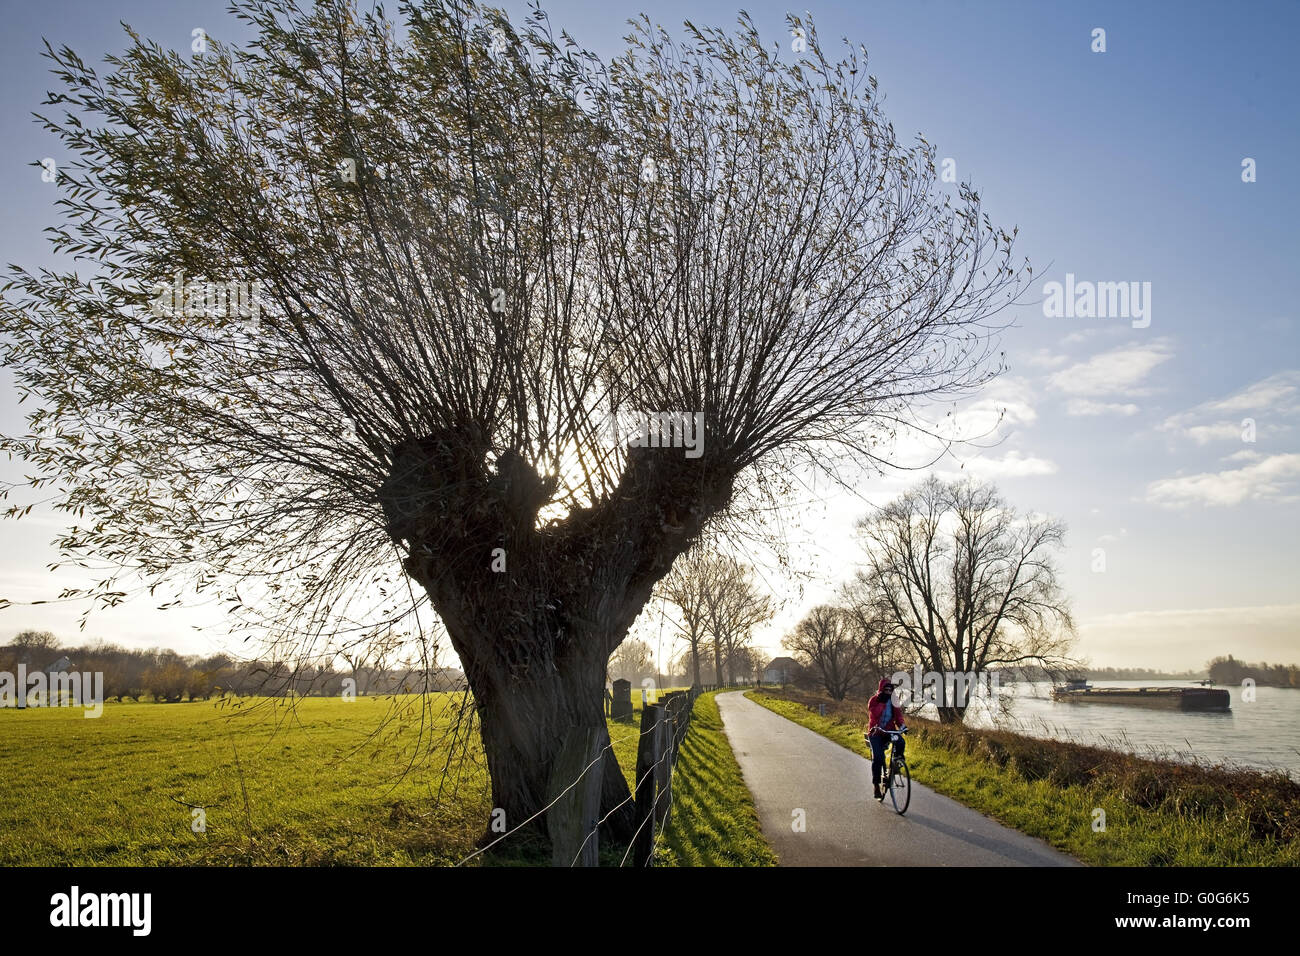 Cyclists in Lower Rhine landscape with pollarded willows, Duesseldorf-Wittlaer, Germany, Europe - Stock Image